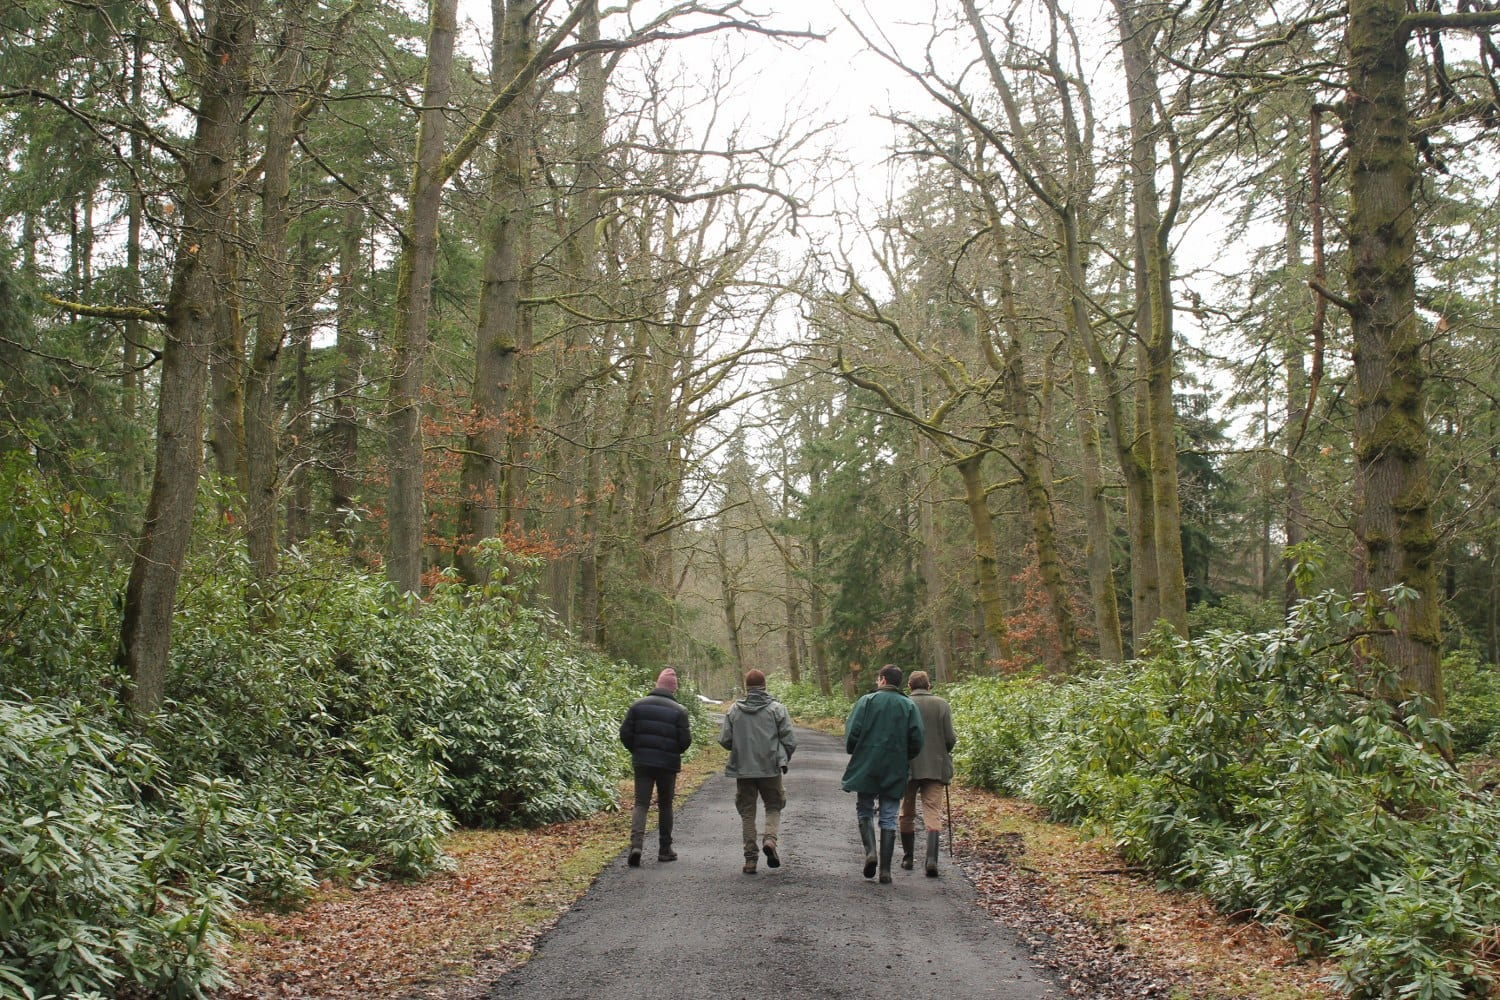 WOODLAND TRUST TO BRING THE CHARTER FOR TREES, WOODS AND PEOPLE TO LIGHTS